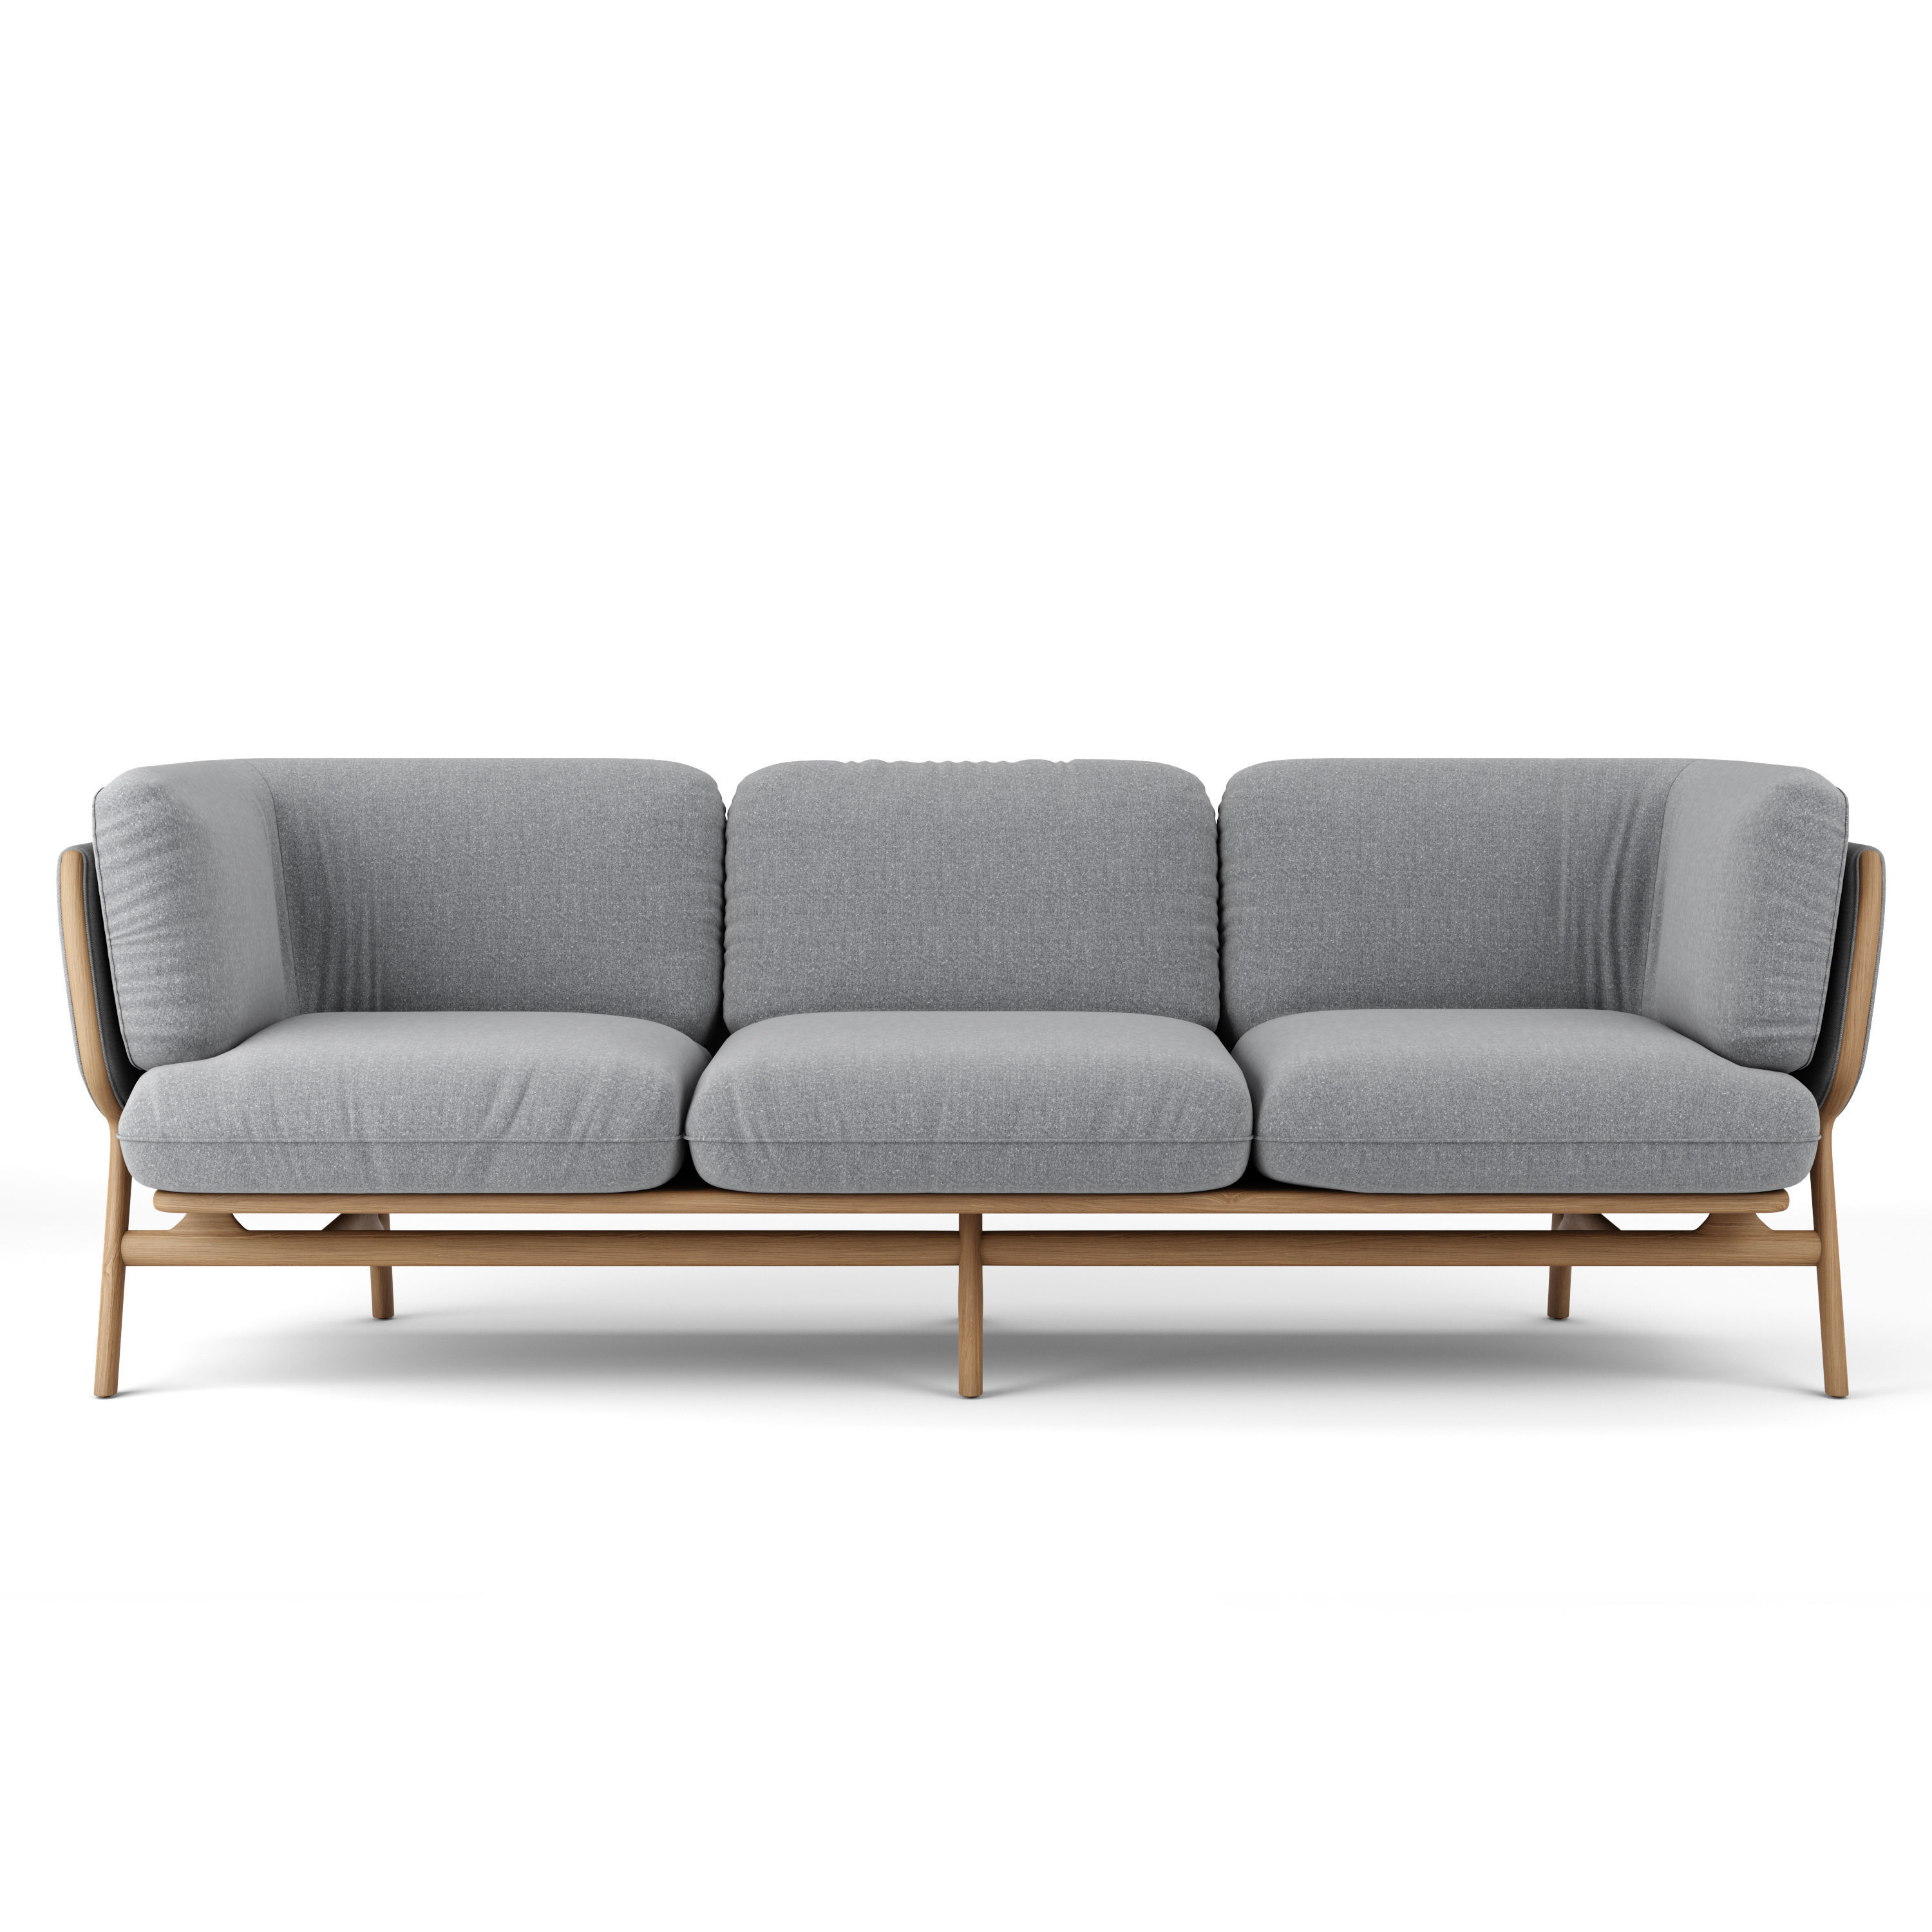 STANLEY 3-SEATER SOFA